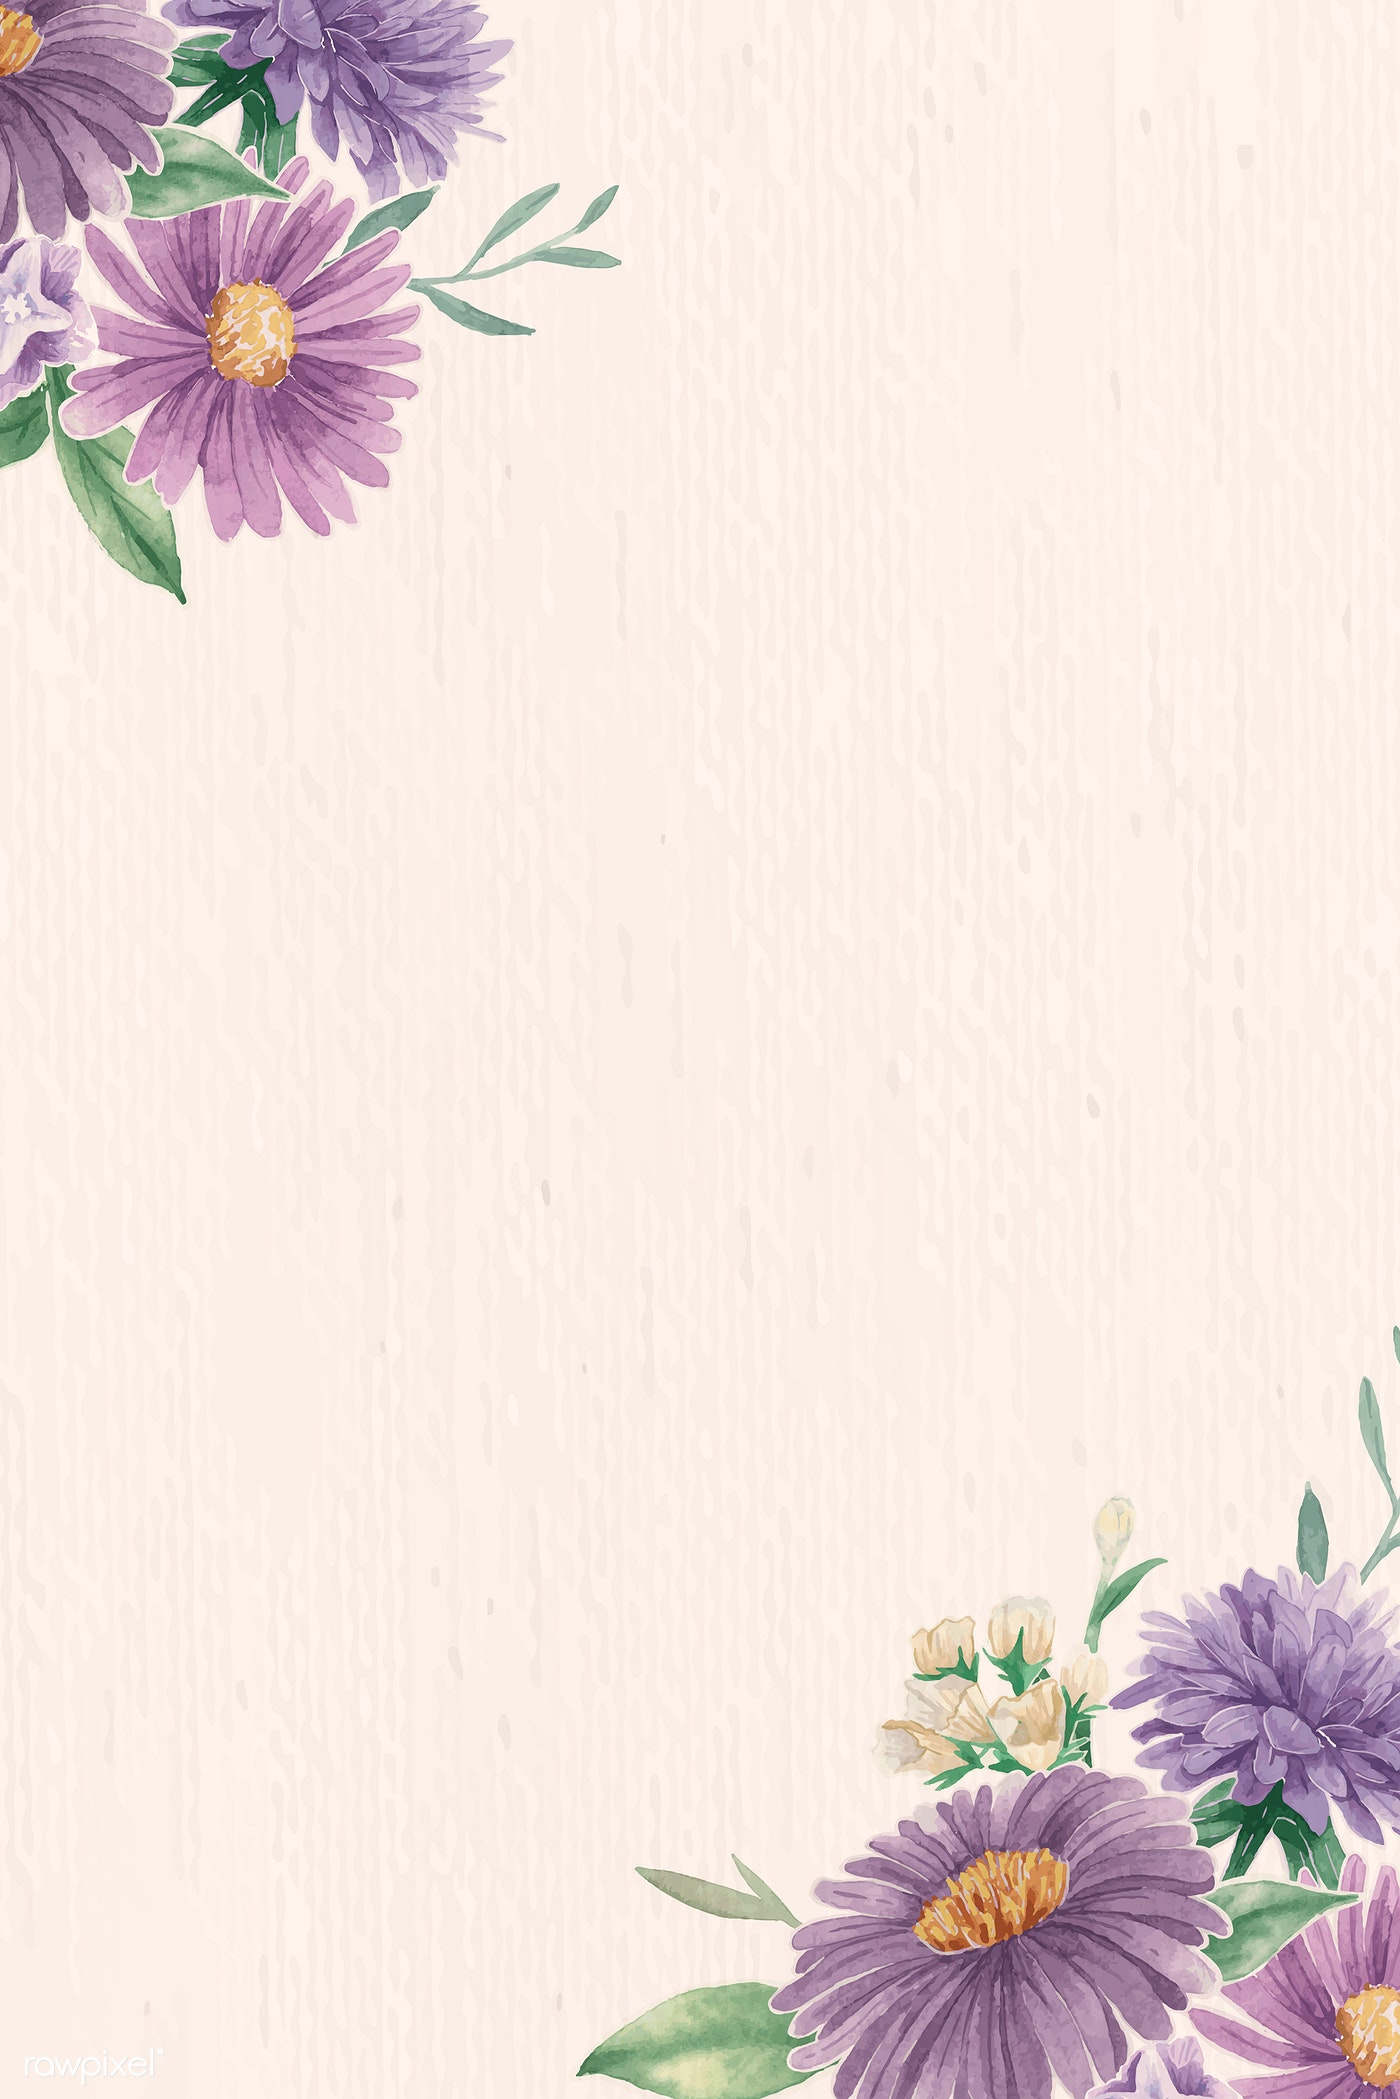 Purple Flower Border Royalty Free Vector 937042